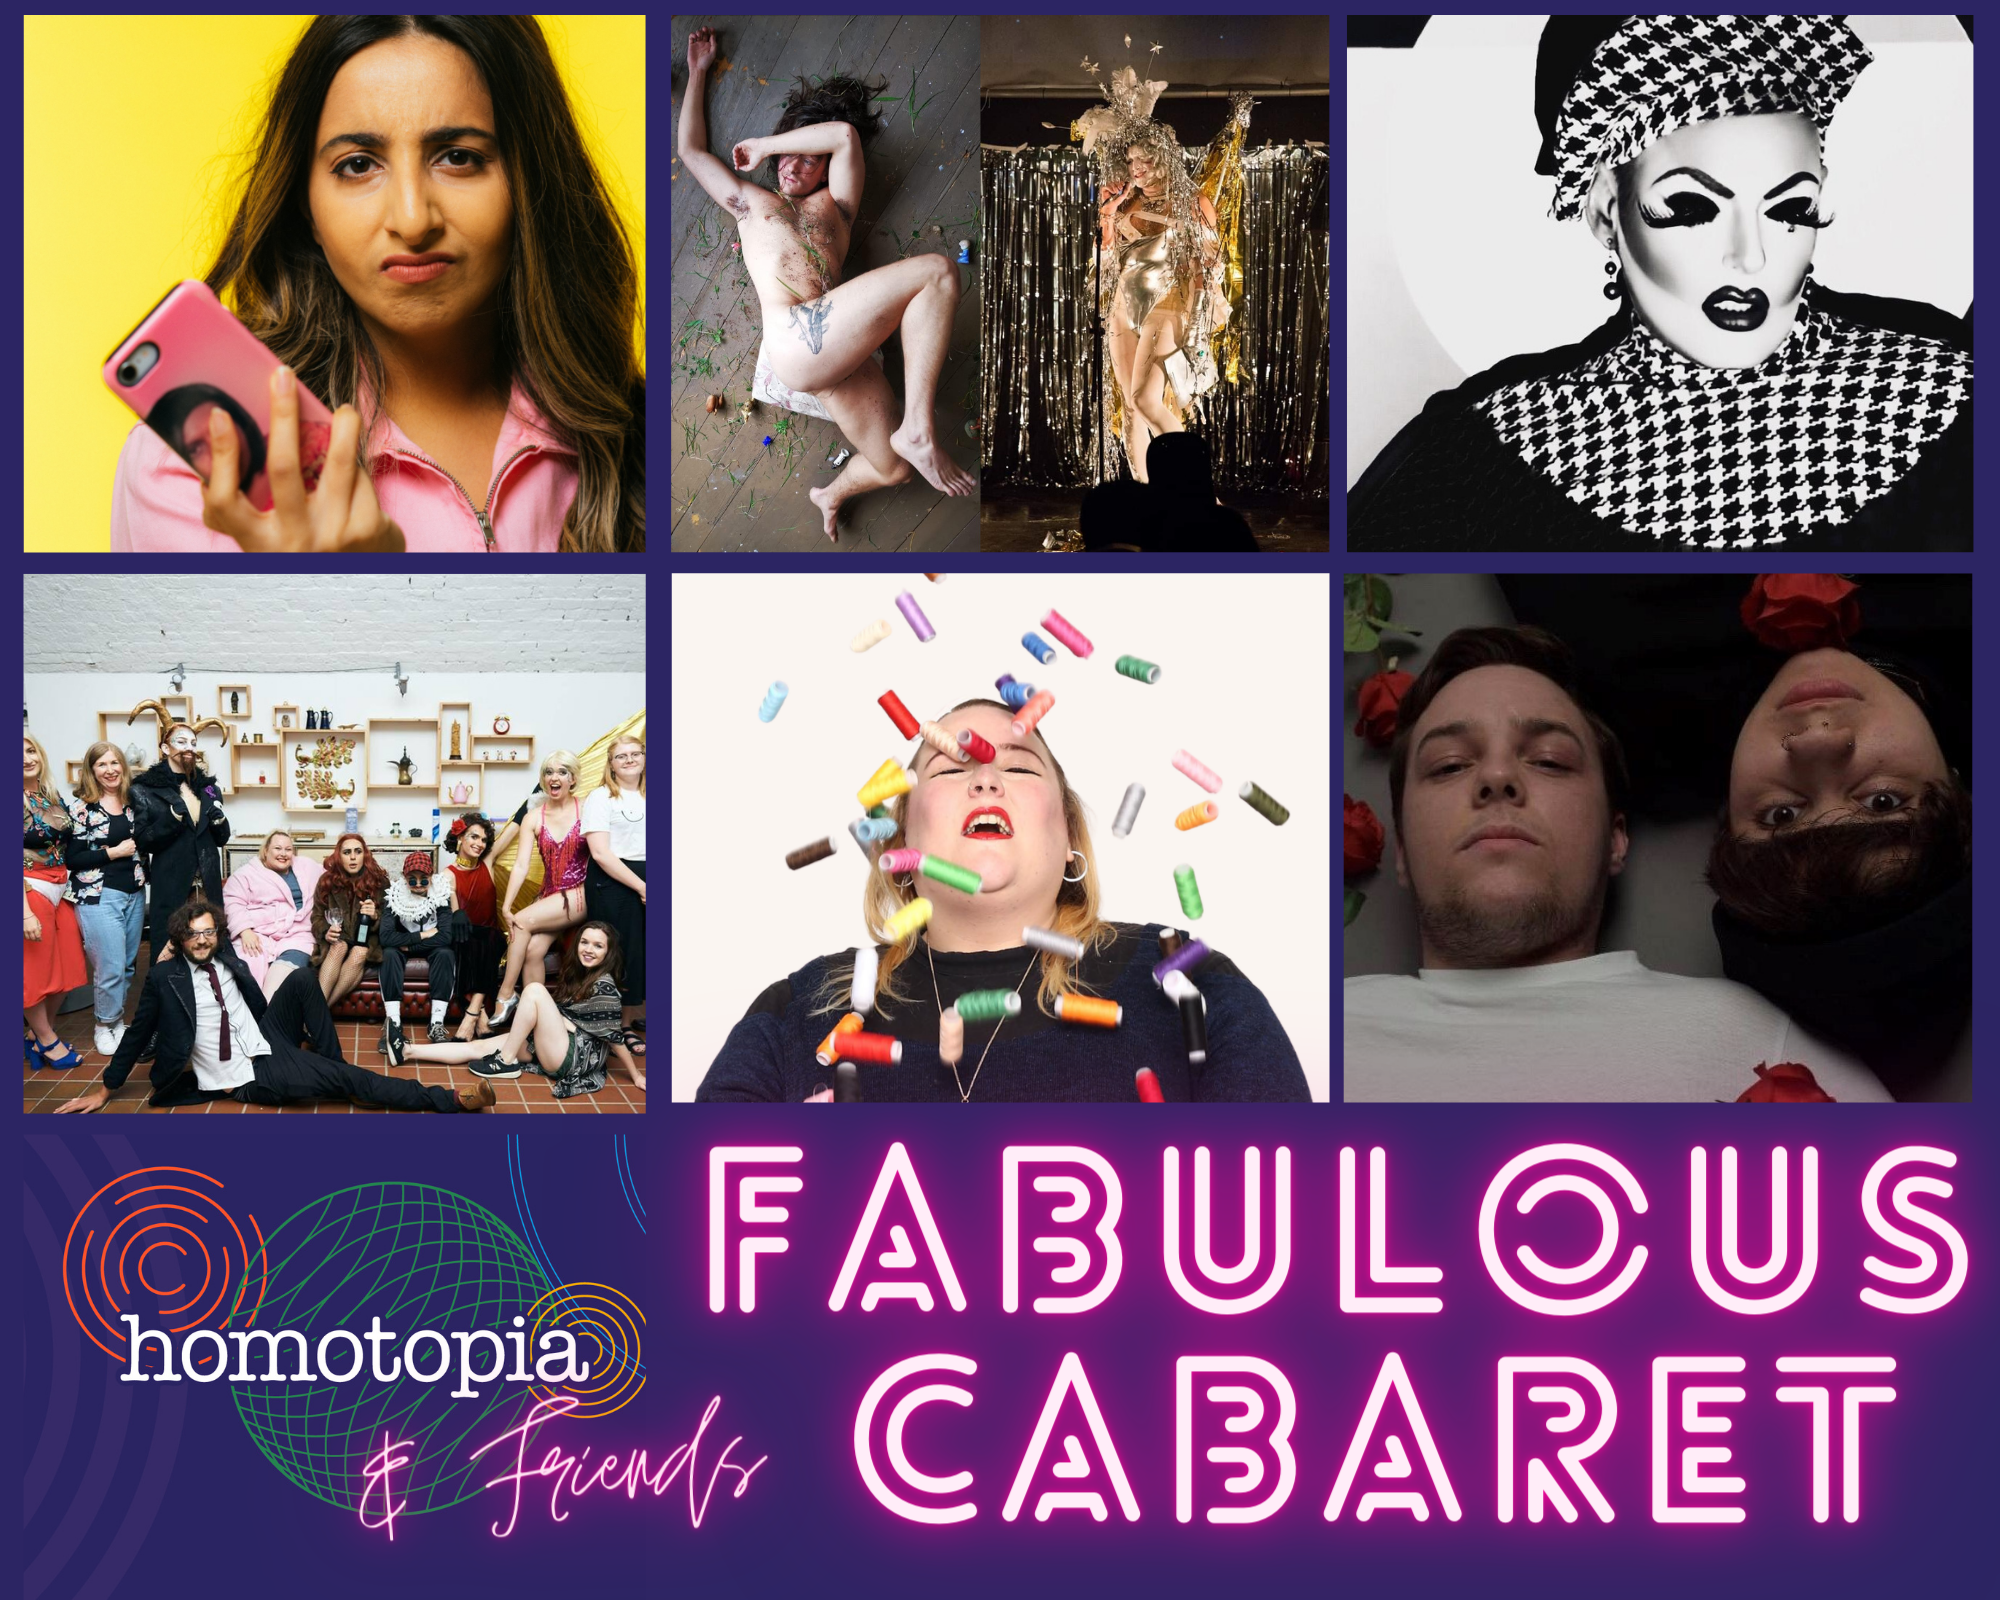 Homotopia and Friends Fabulous Cabaret